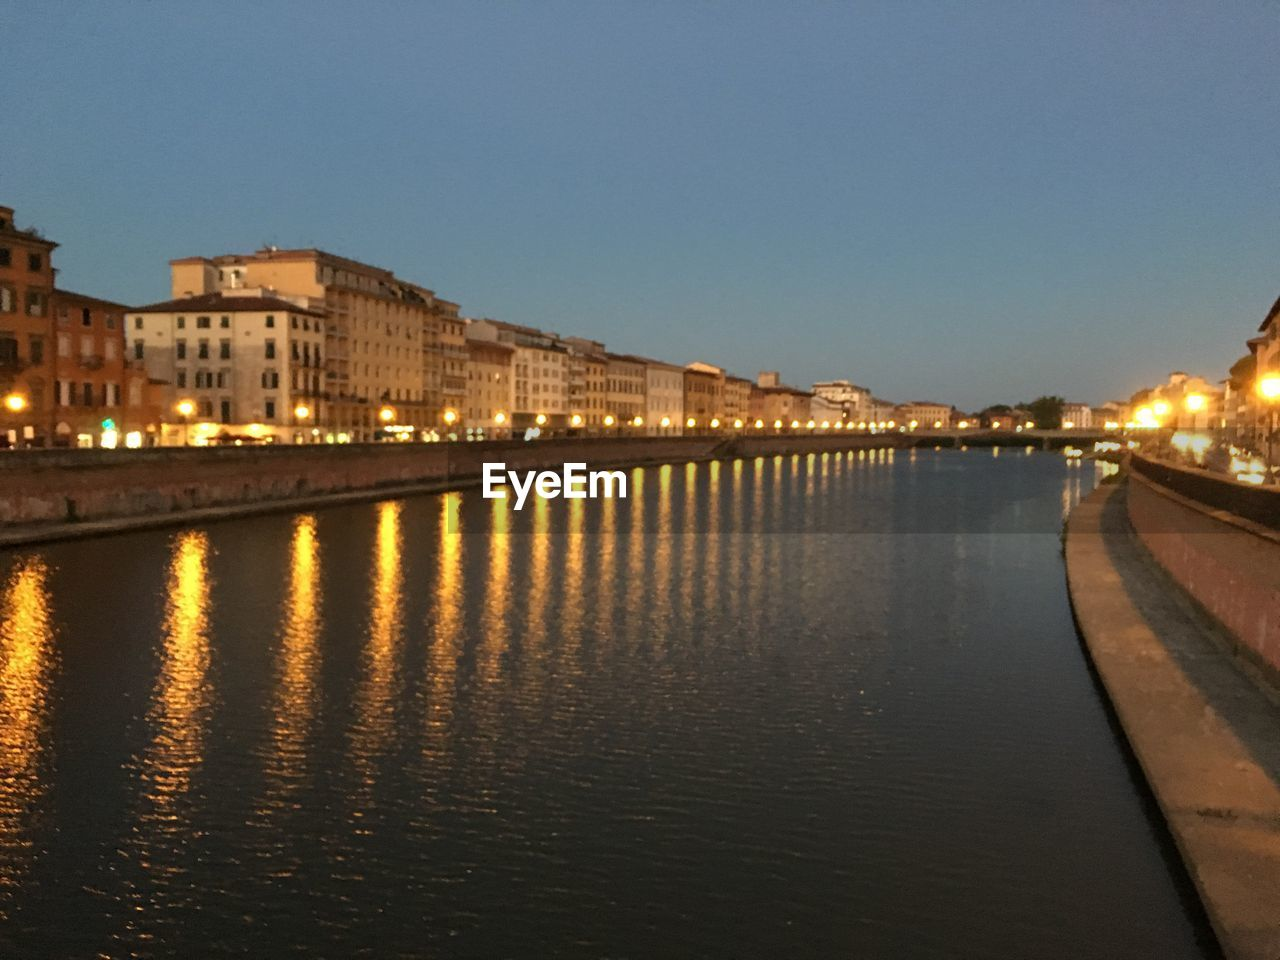 architecture, built structure, building exterior, sky, water, illuminated, reflection, nature, no people, copy space, city, waterfront, river, clear sky, connection, night, dusk, building, transportation, outdoors